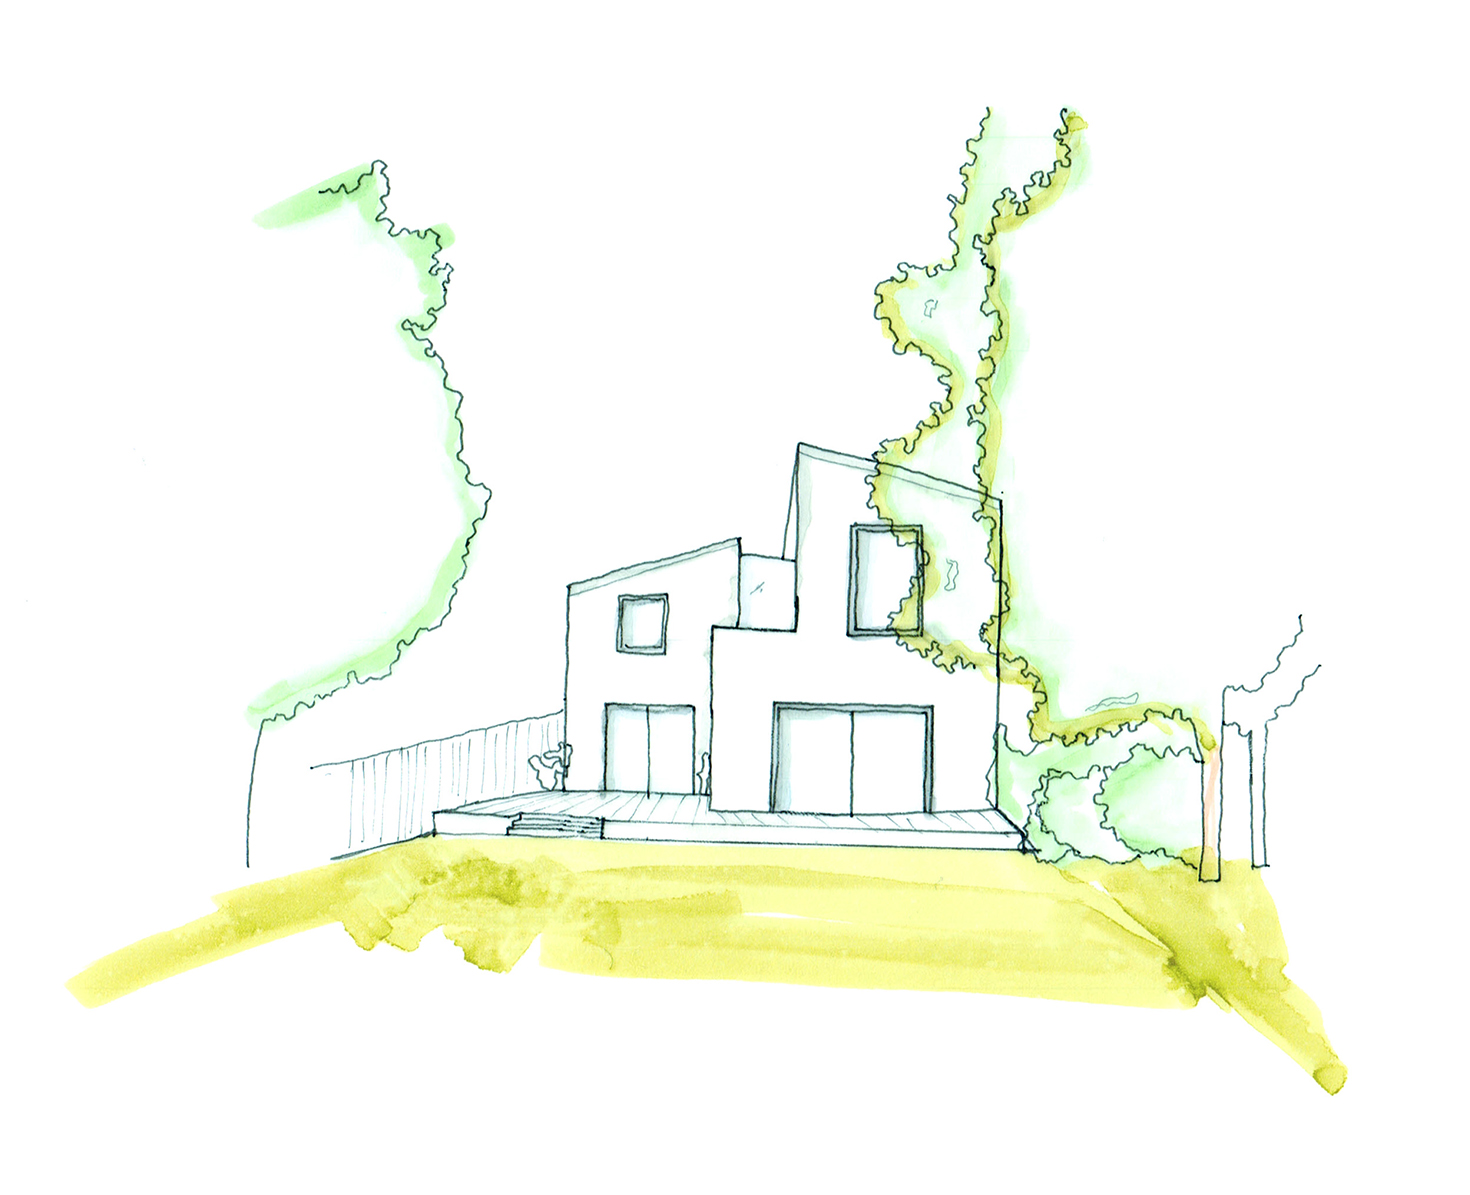 initial concept sketch of rear elevation